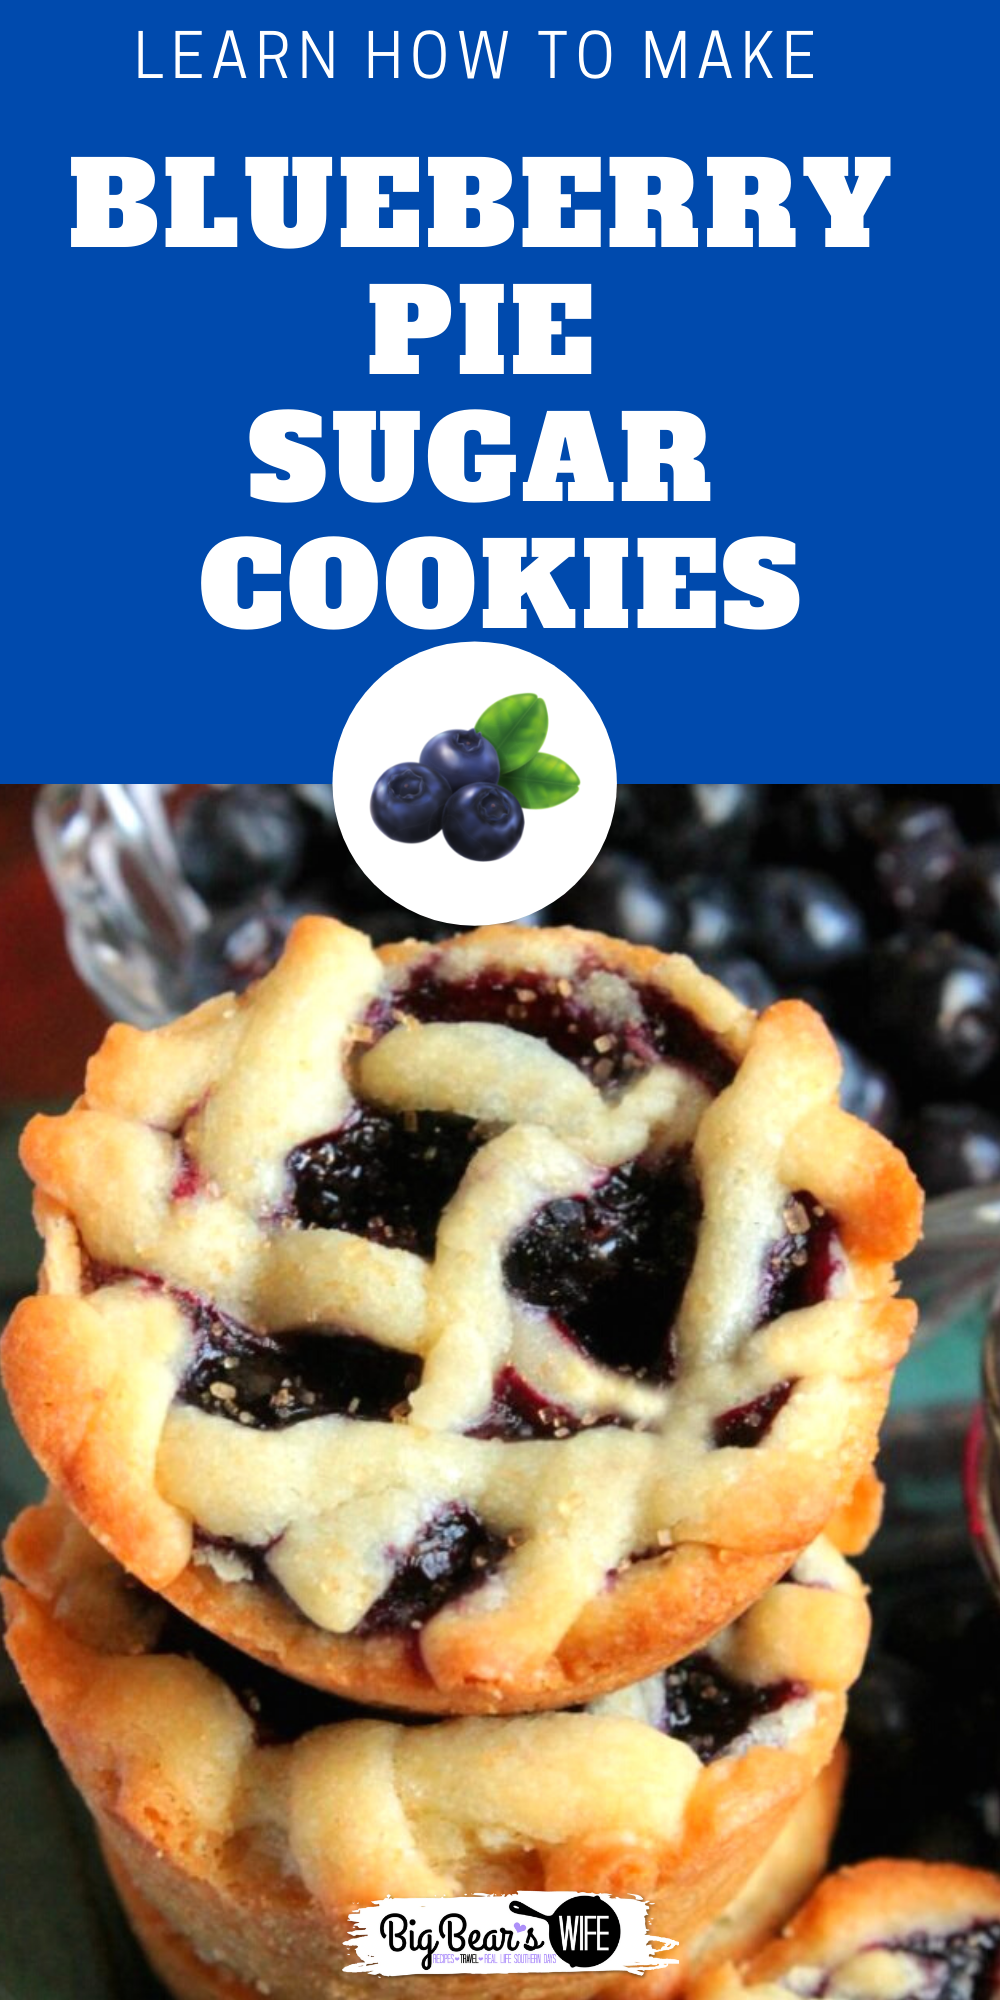 These little Blueberry Pie Sugar Cookies are filled with an amazing but easy homemade blueberry pie filling! While they look like mini pies, they're actually sugar cookies! via @bigbearswife